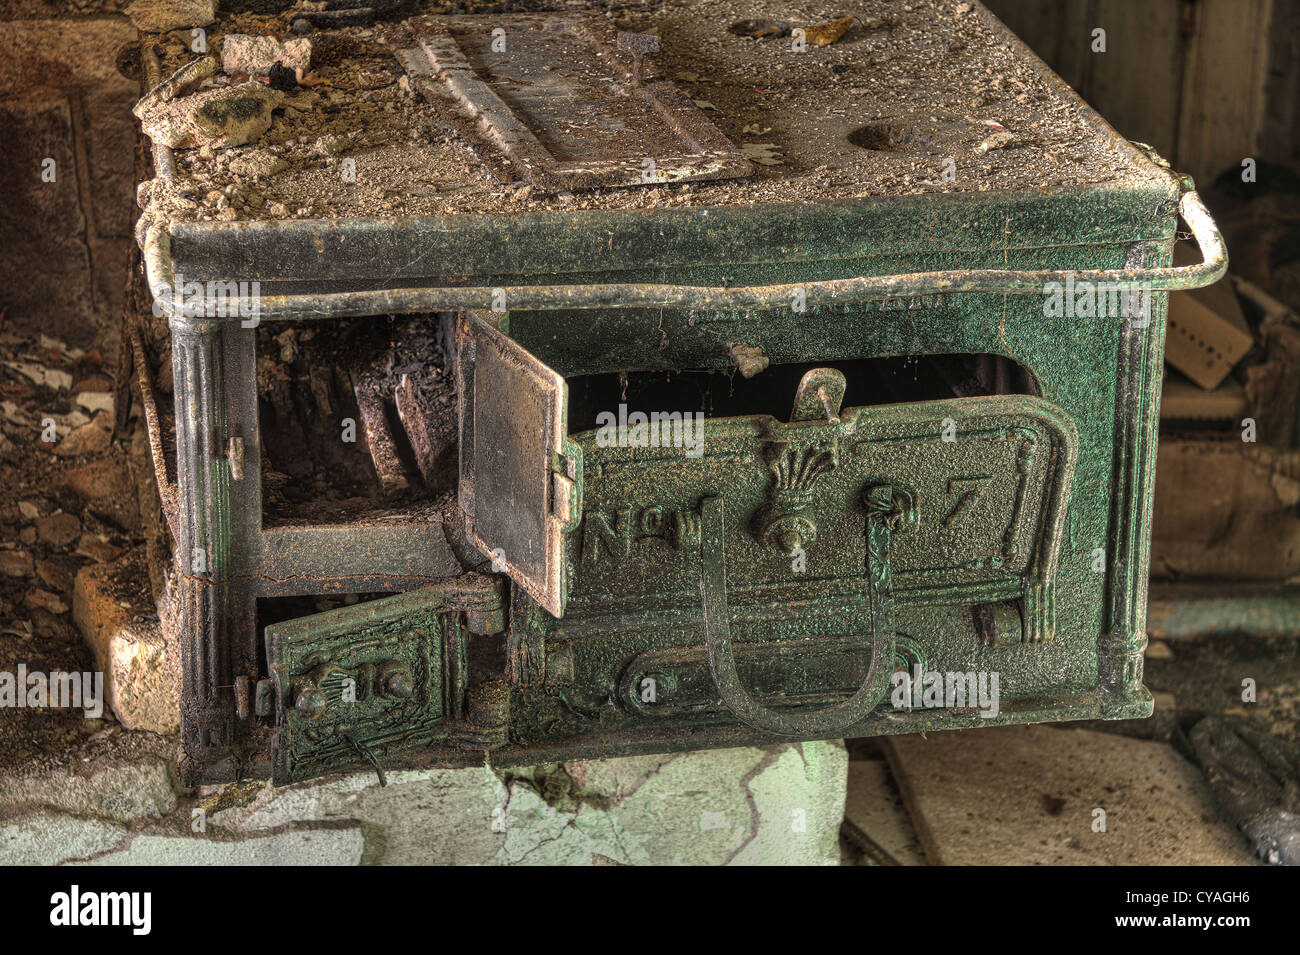 The kitchen stove in an old abandoned building - Stock Image